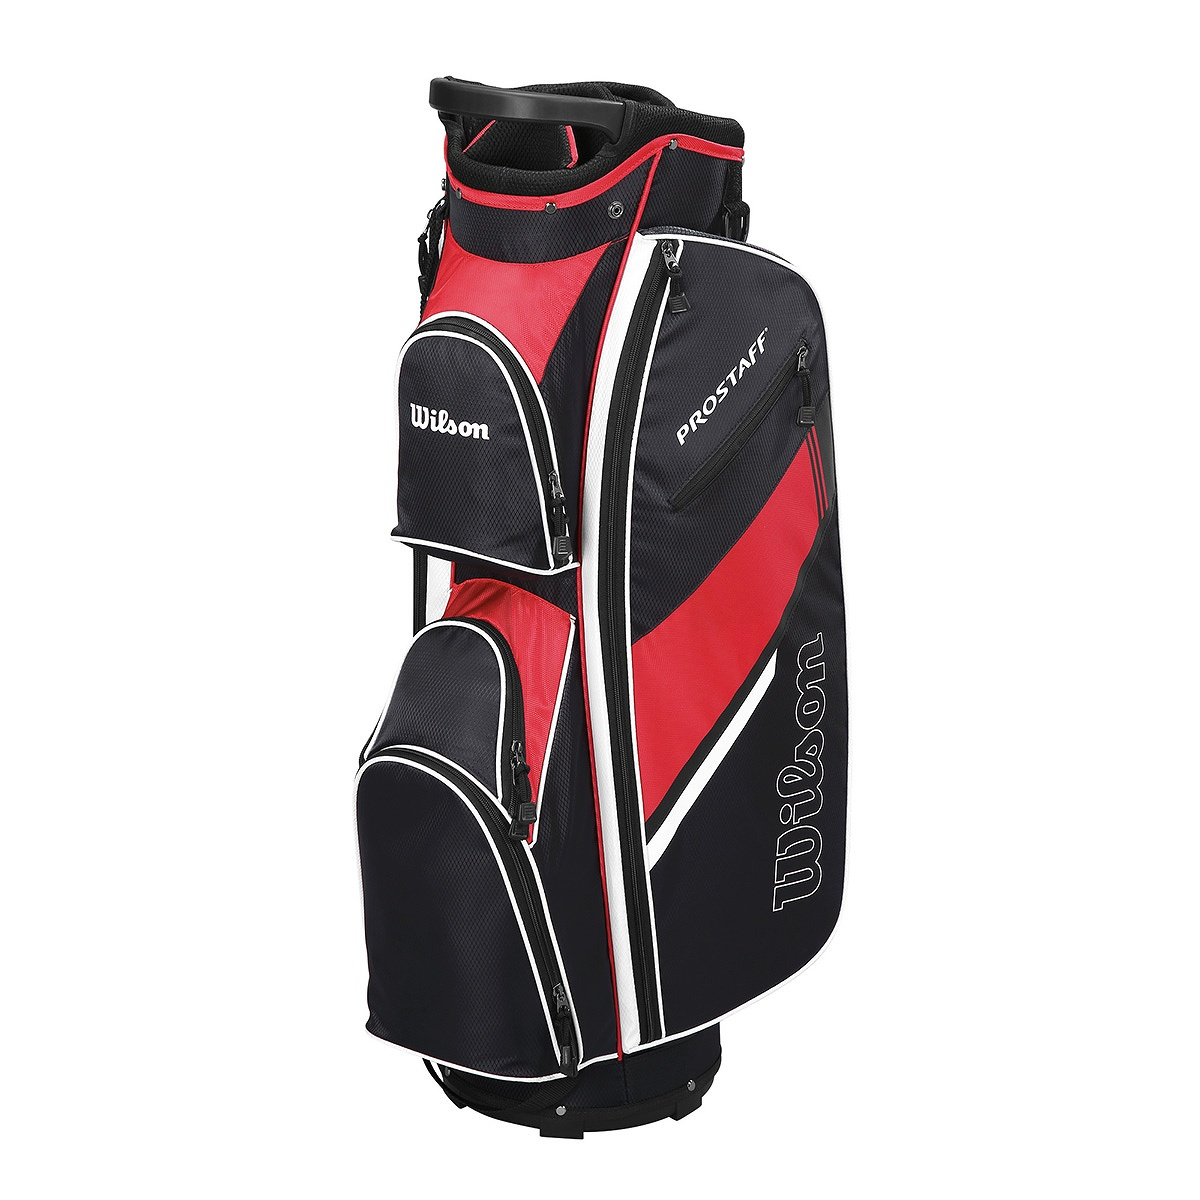 046d0ea6a0d9 Wilson Prostaff Cart Bag Black Red